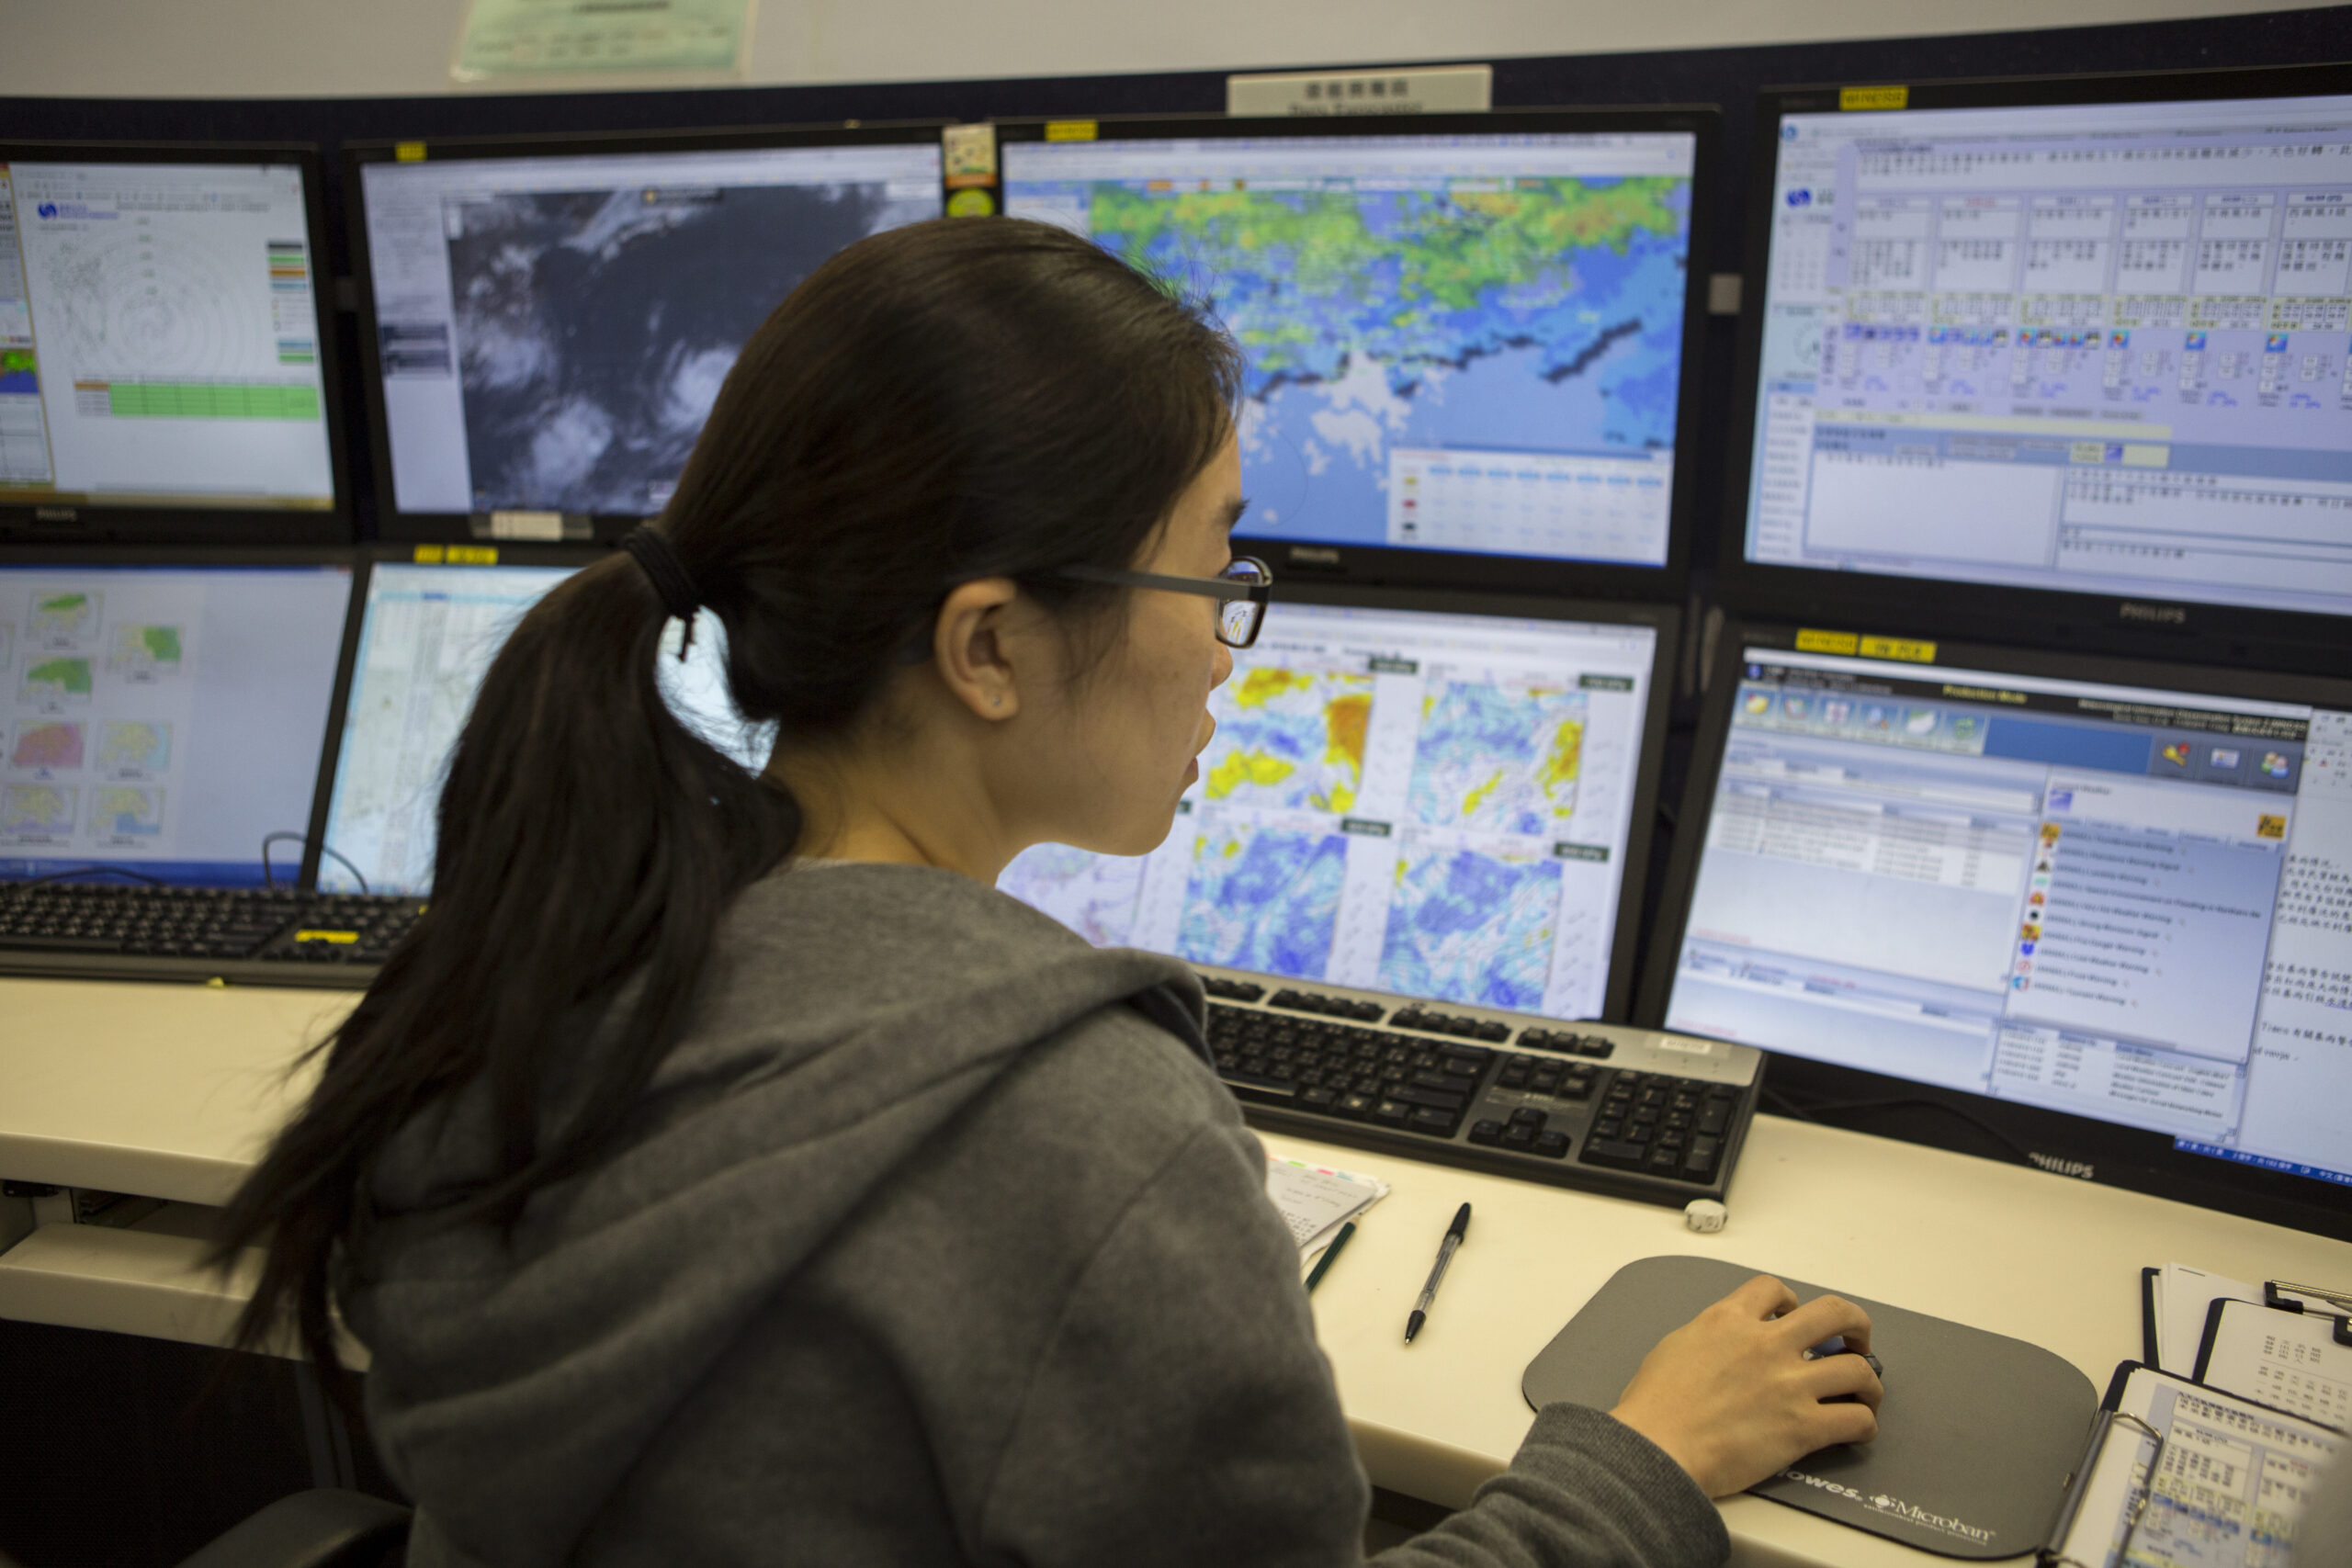 According to the data of the Hong Kong Observatory, the city of Hong Kong is seeing a significant long-term warming trend, the average temperatures are rising at a rate of 1.2 degrees celsius per century and the number of very hot days and very hot nights has increased significantly by 6 times and 35 times respectively.